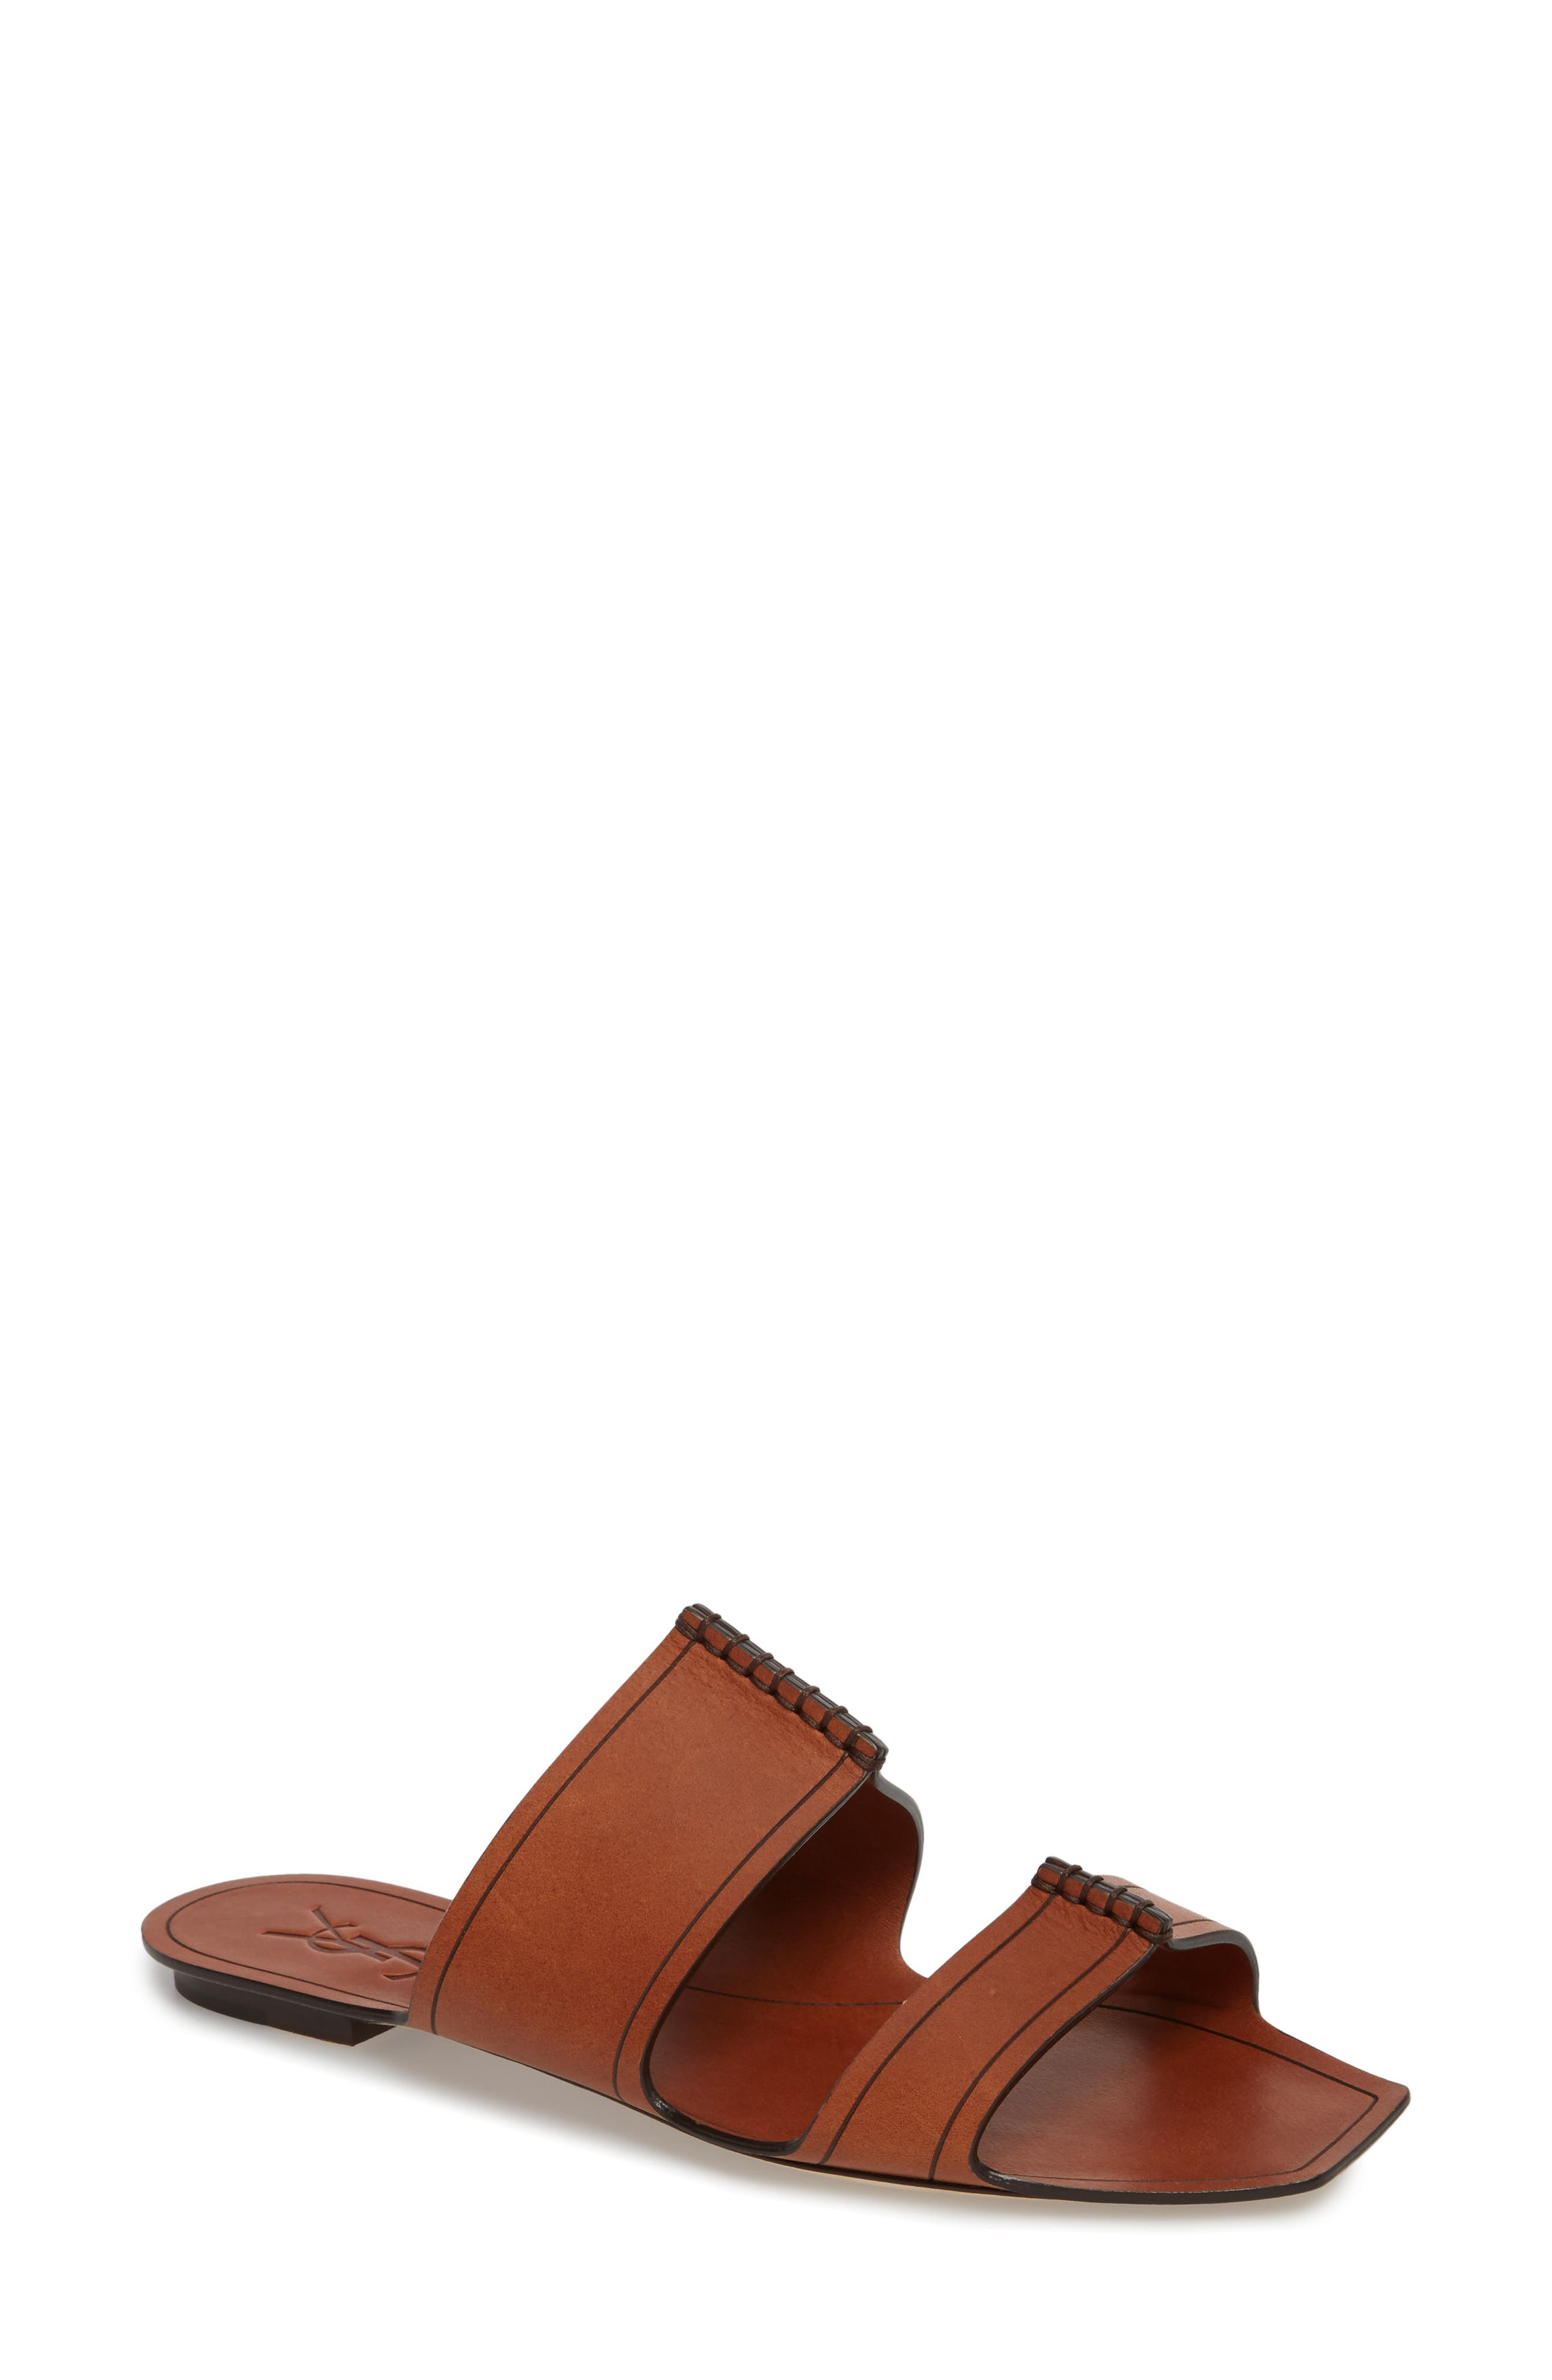 Double Band Slide Sandal,                         Main,                         color, 200